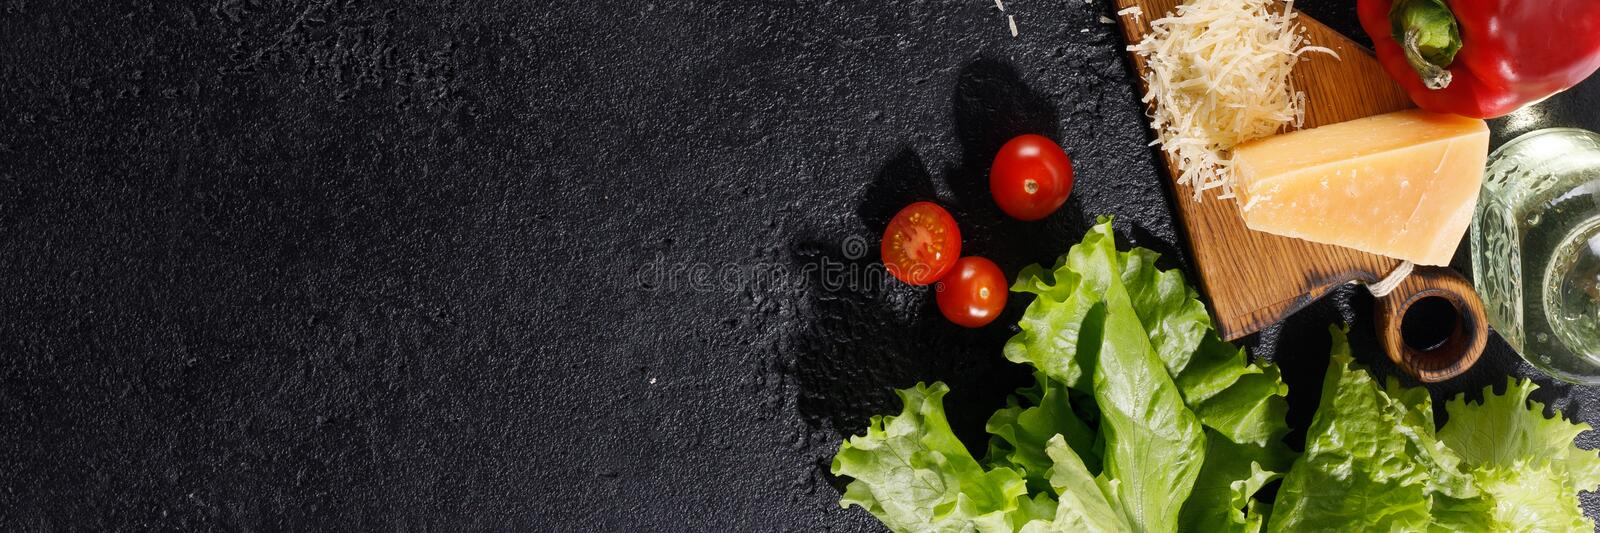 Ingredients for pizza. Tomatoes, olive oil, greens and parmesan on a wooden background. Copy space stock photos